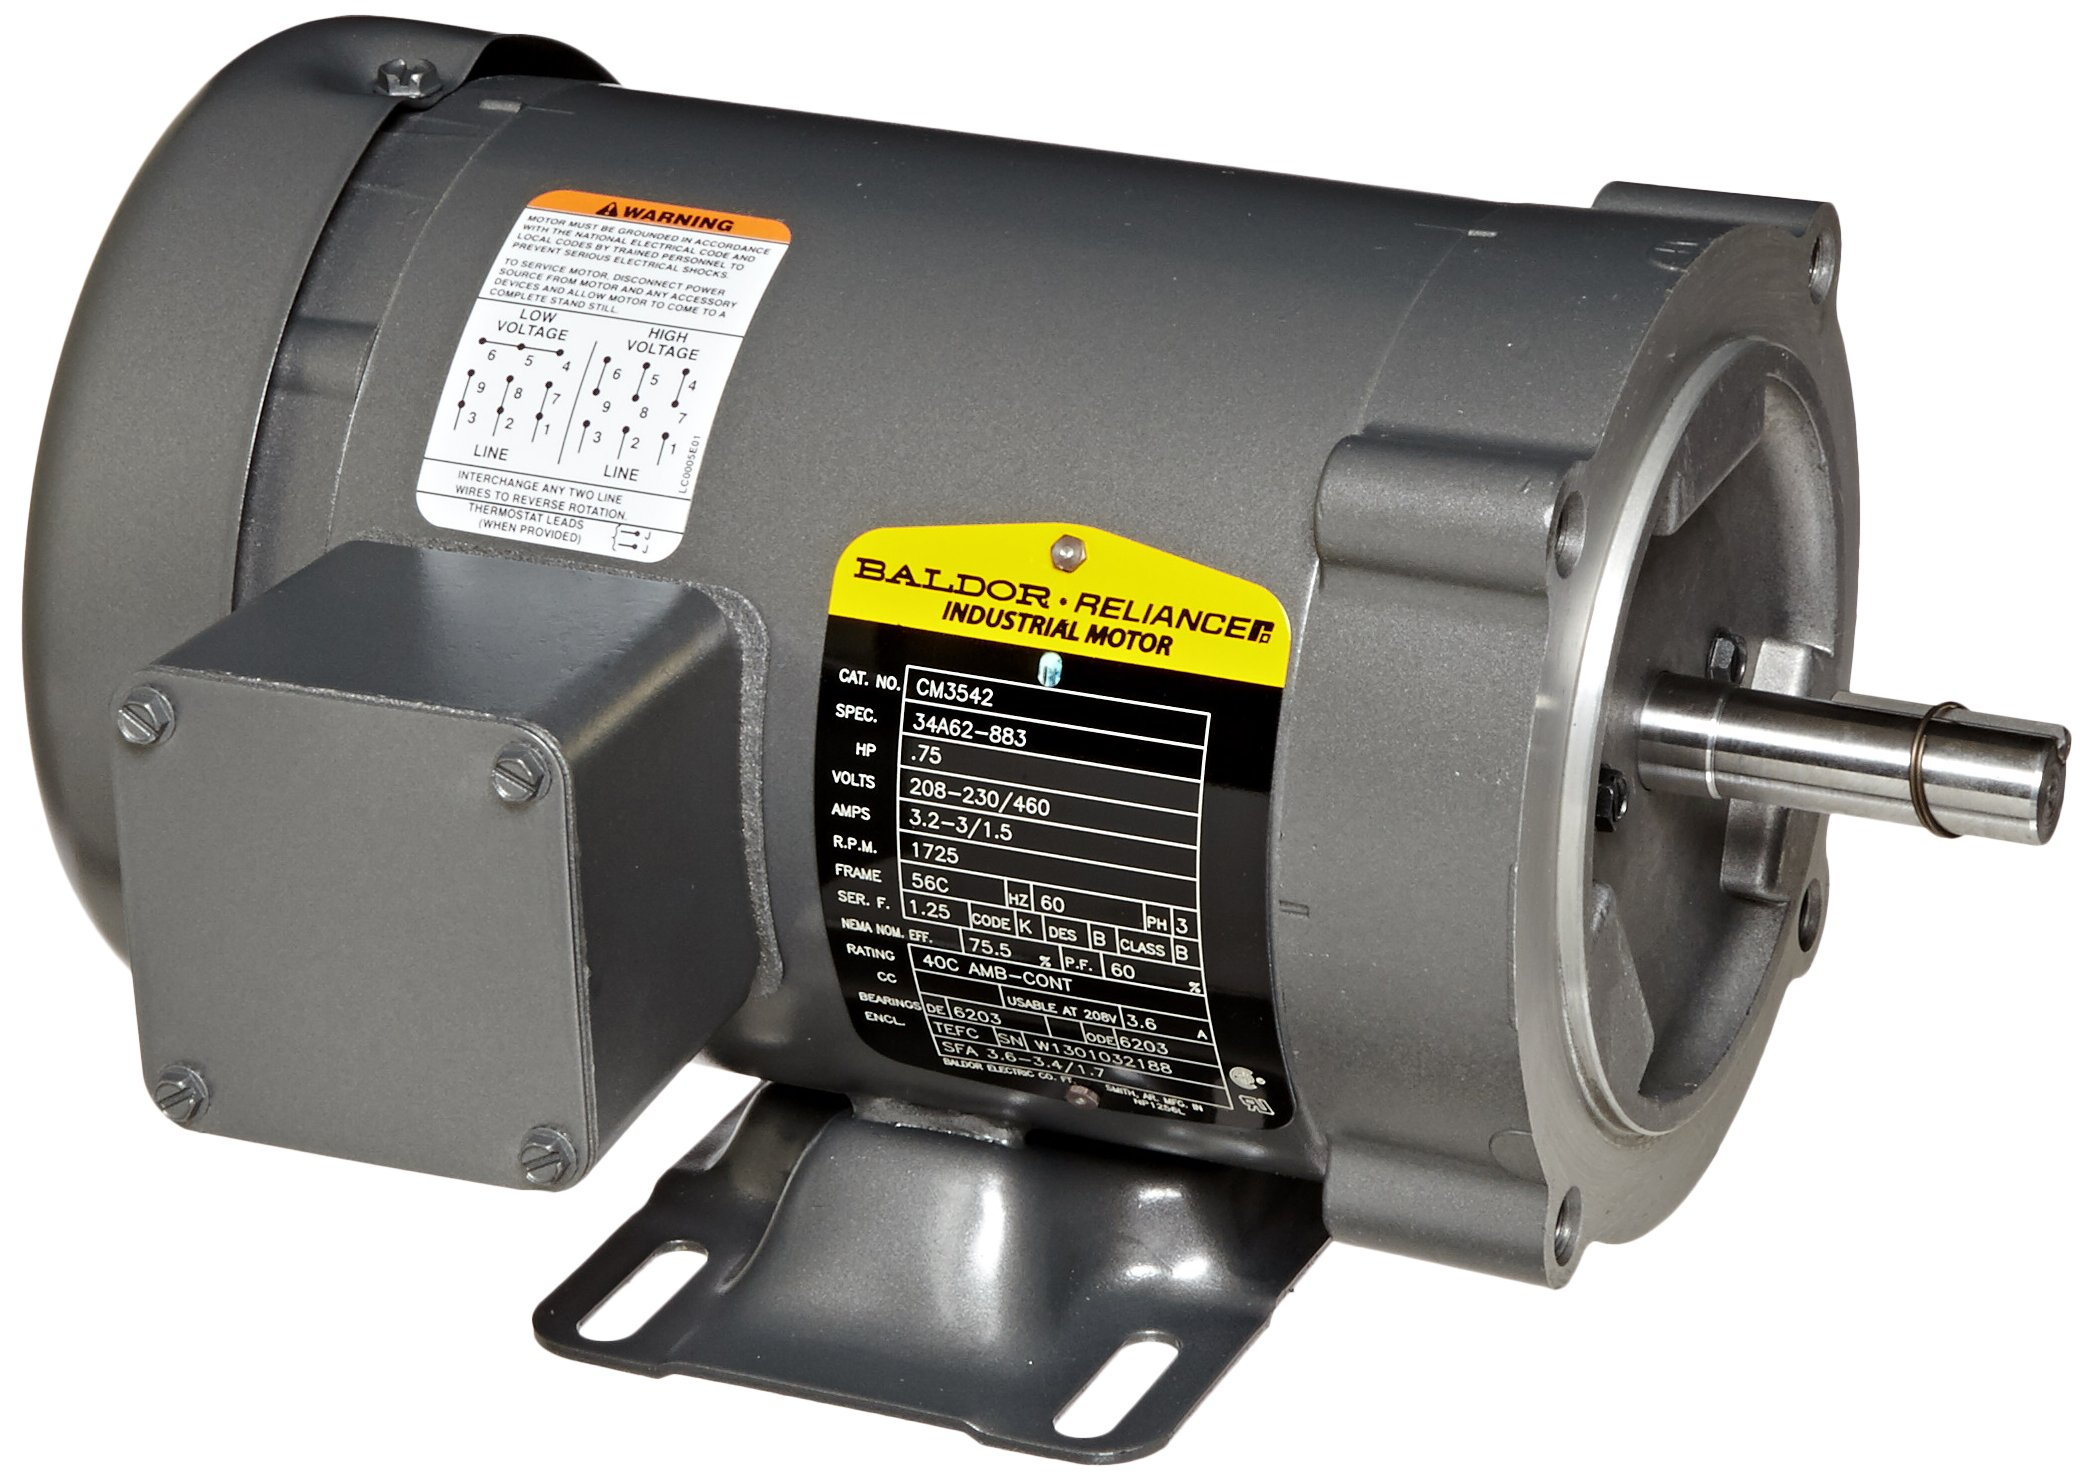 Baldor CM3542 General Purpose AC Motor, 3 Phase, 56C Frame, TEFC Enclosure, 3/4Hp Output, 1725rpm, 60Hz, 208-230/460V Voltage by Baldor